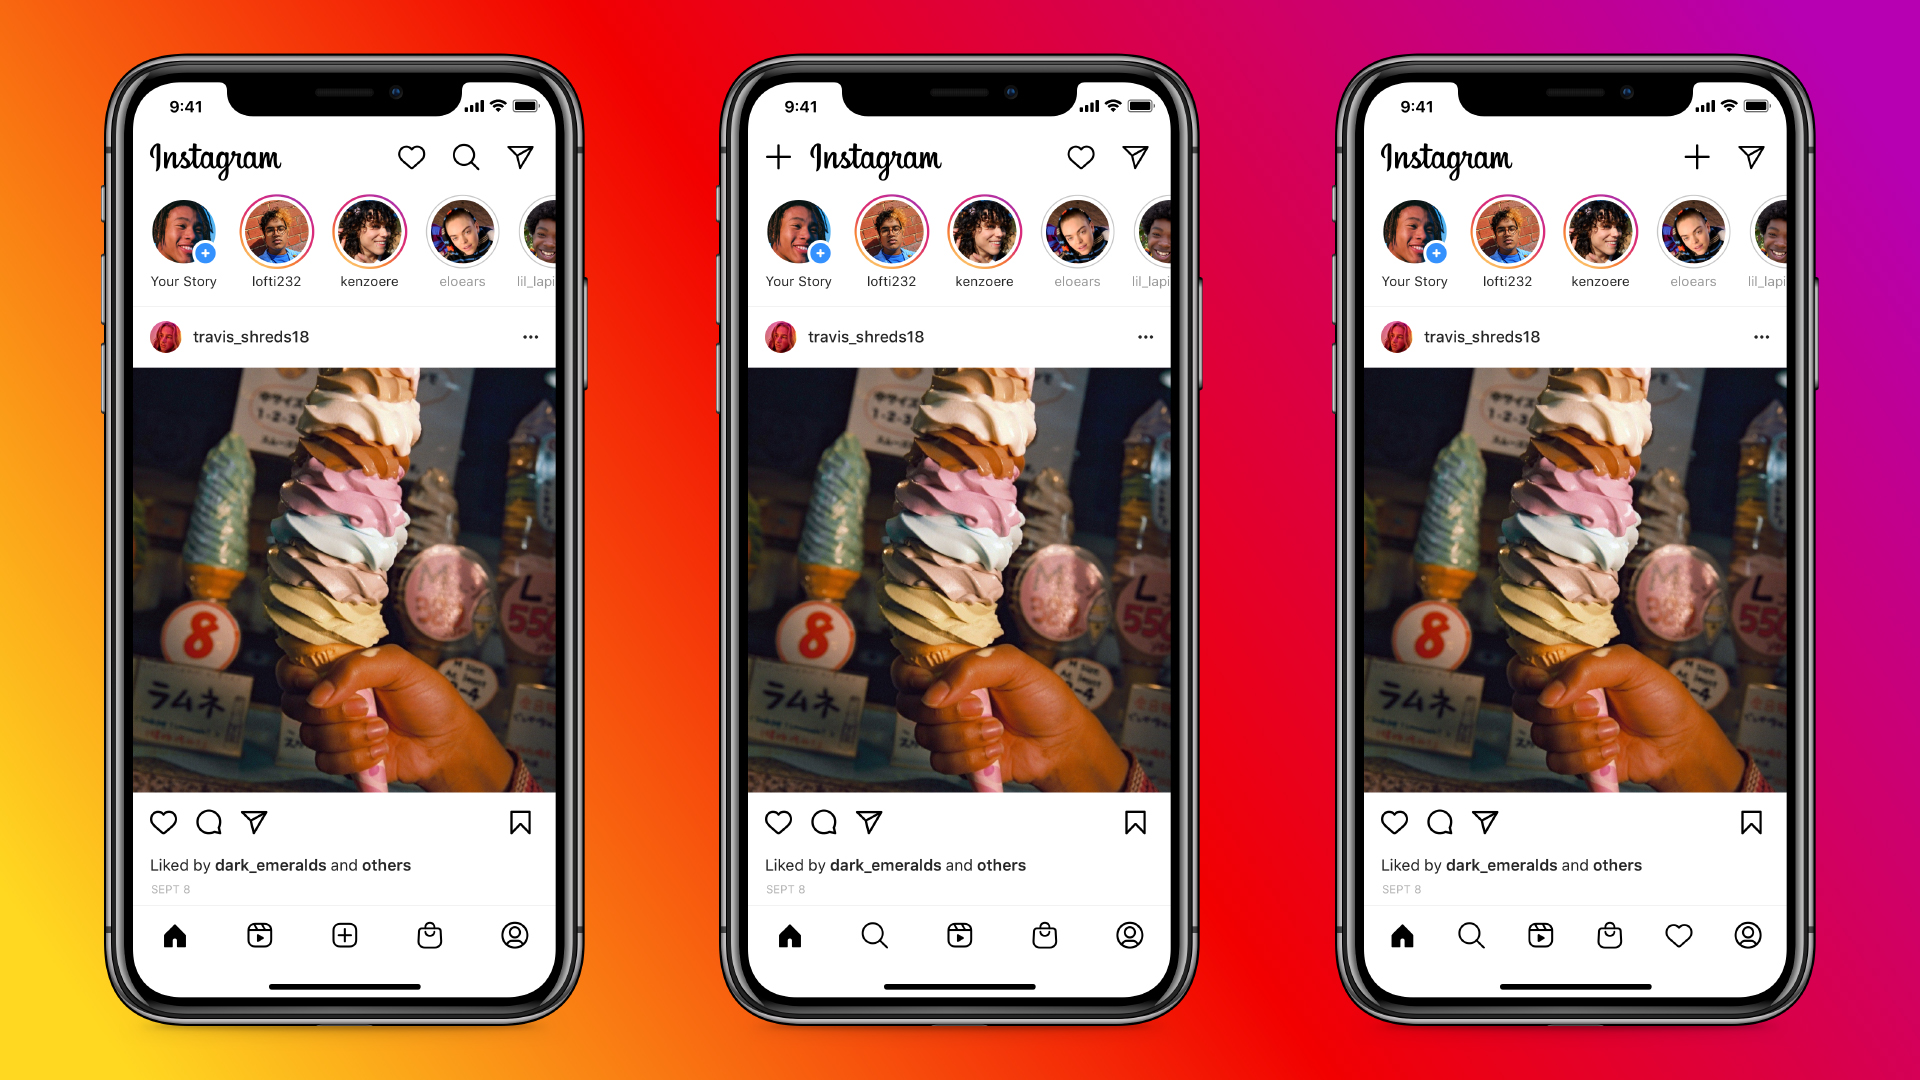 Instagram tests new home screen for Shop and Reels